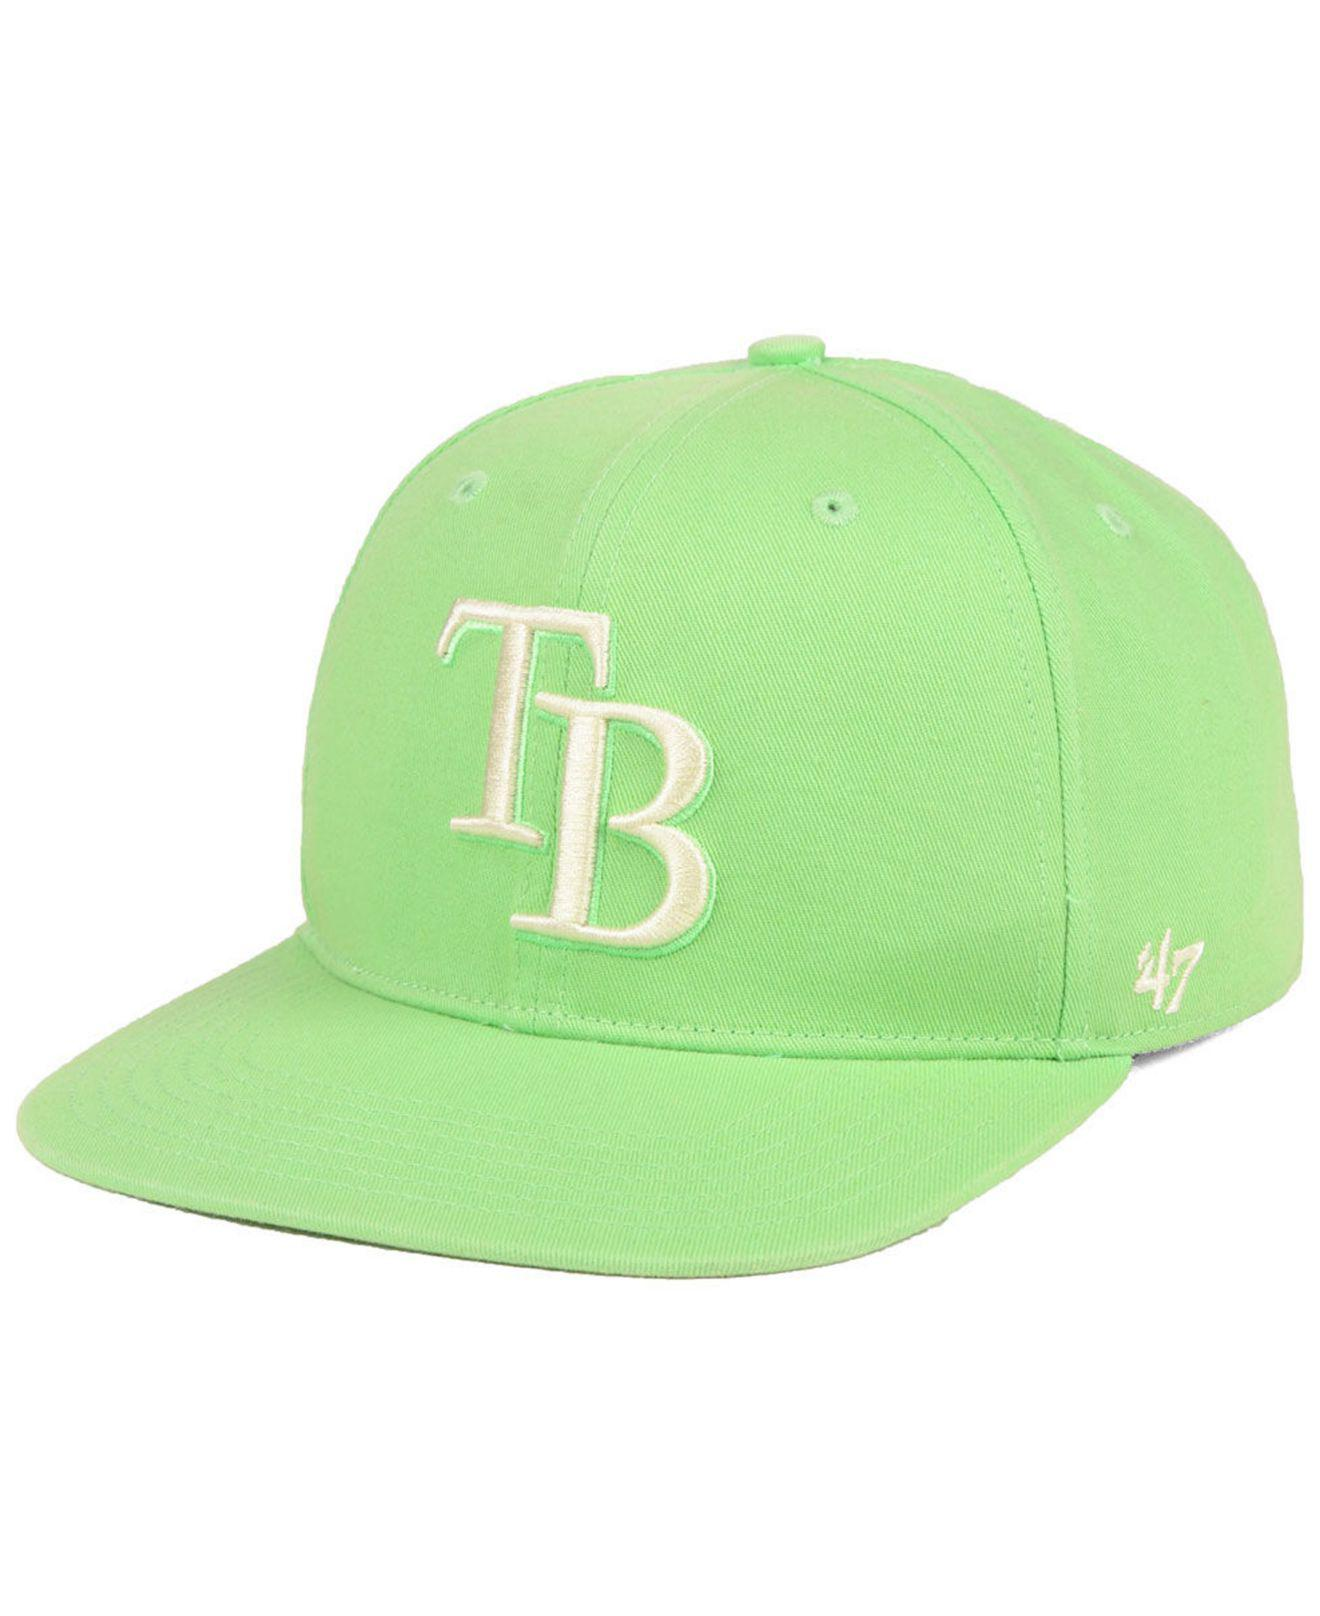 the latest 6e6e1 1f41c ... Tampa Bay Rays Island Snapback Cap for Men - Lyst. View fullscreen